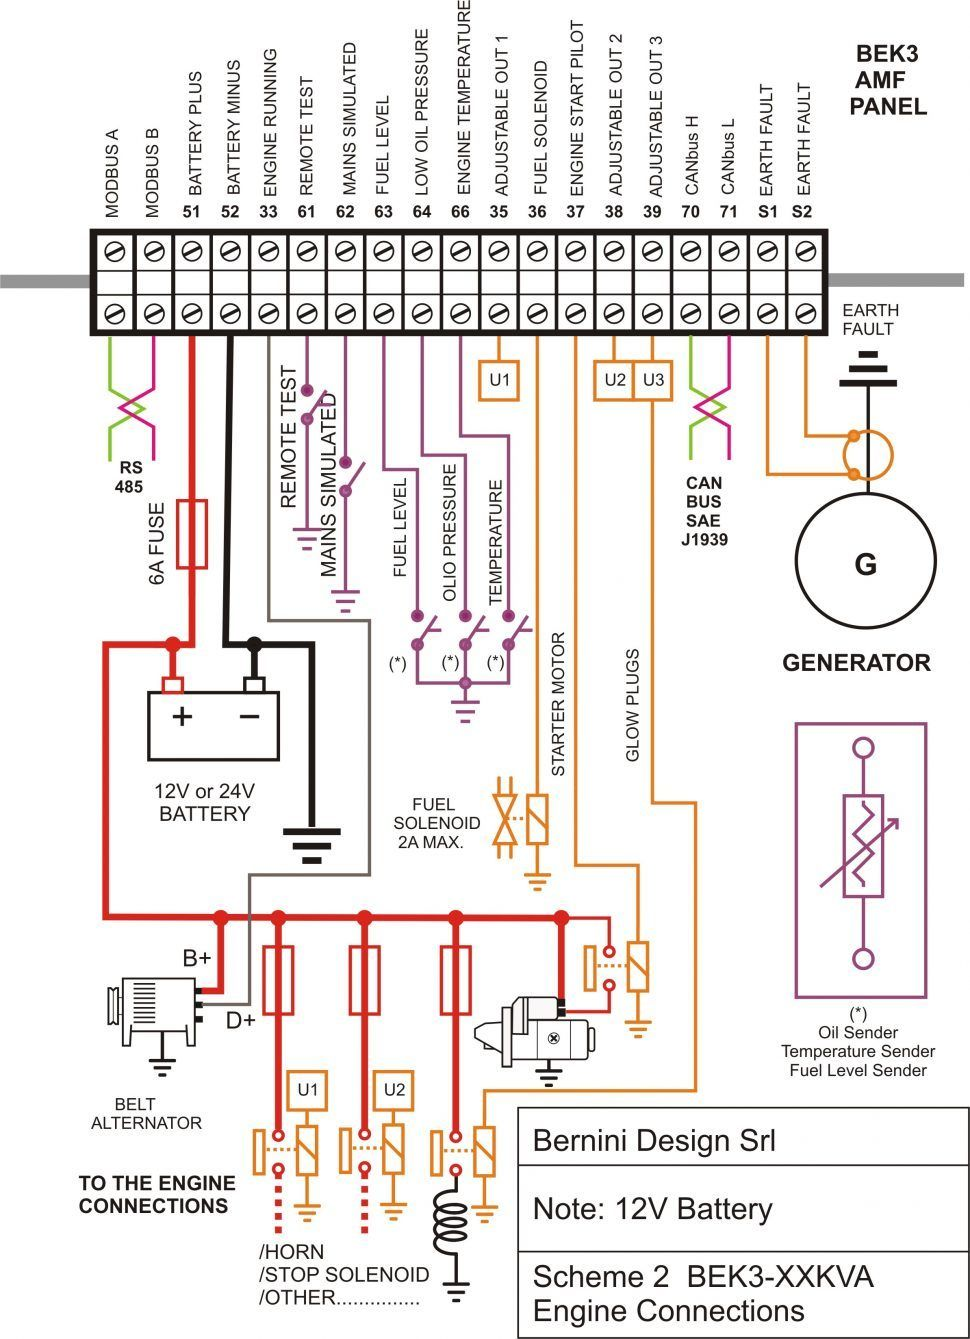 diagram wiring diagrams home electrical basics house basic inside within switch [ 970 x 1339 Pixel ]